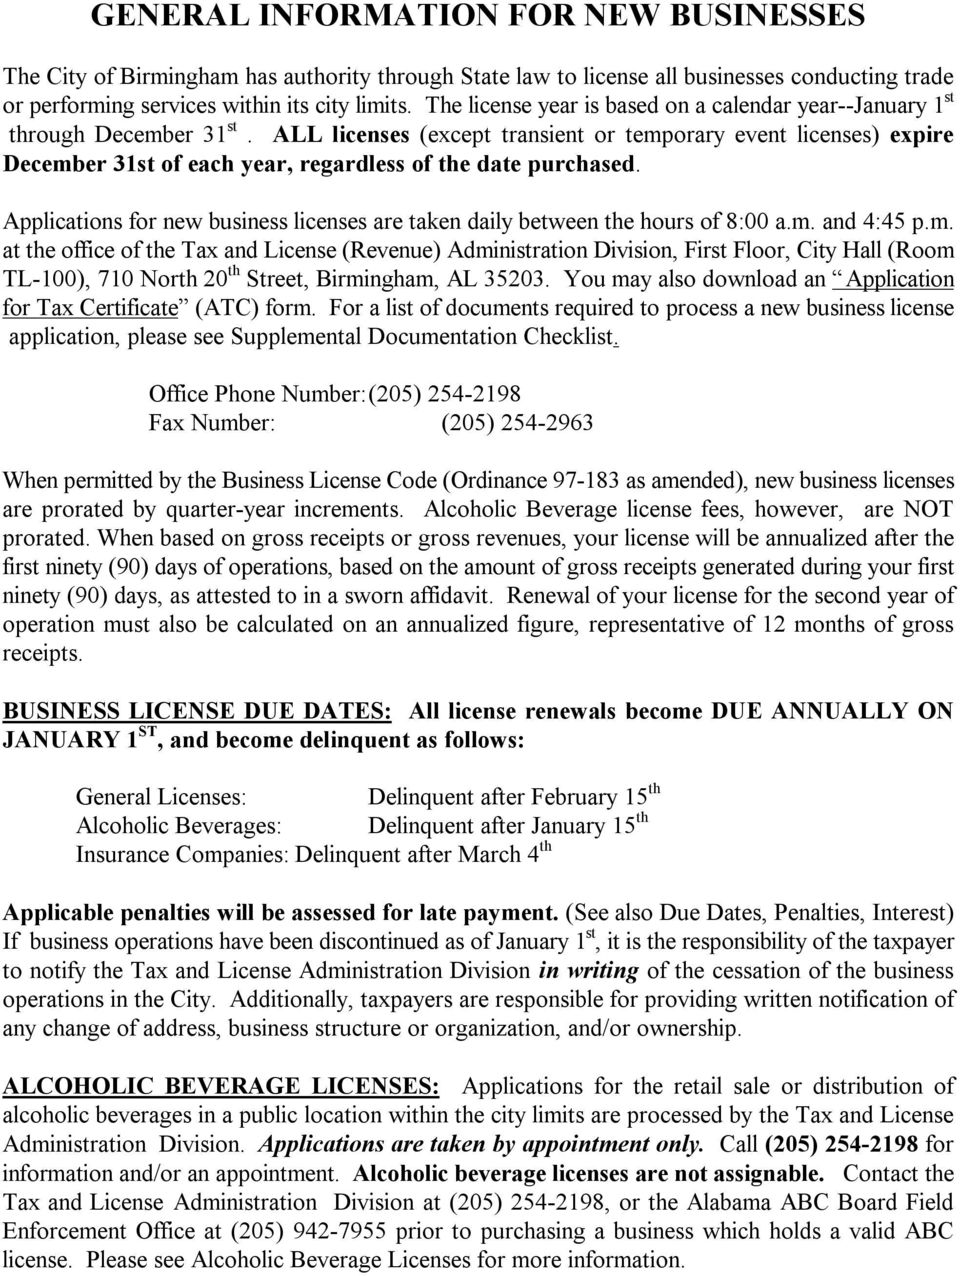 ALL licenses (except transient or temporary event licenses) expire December 31st of each year, regardless of the date purchased.